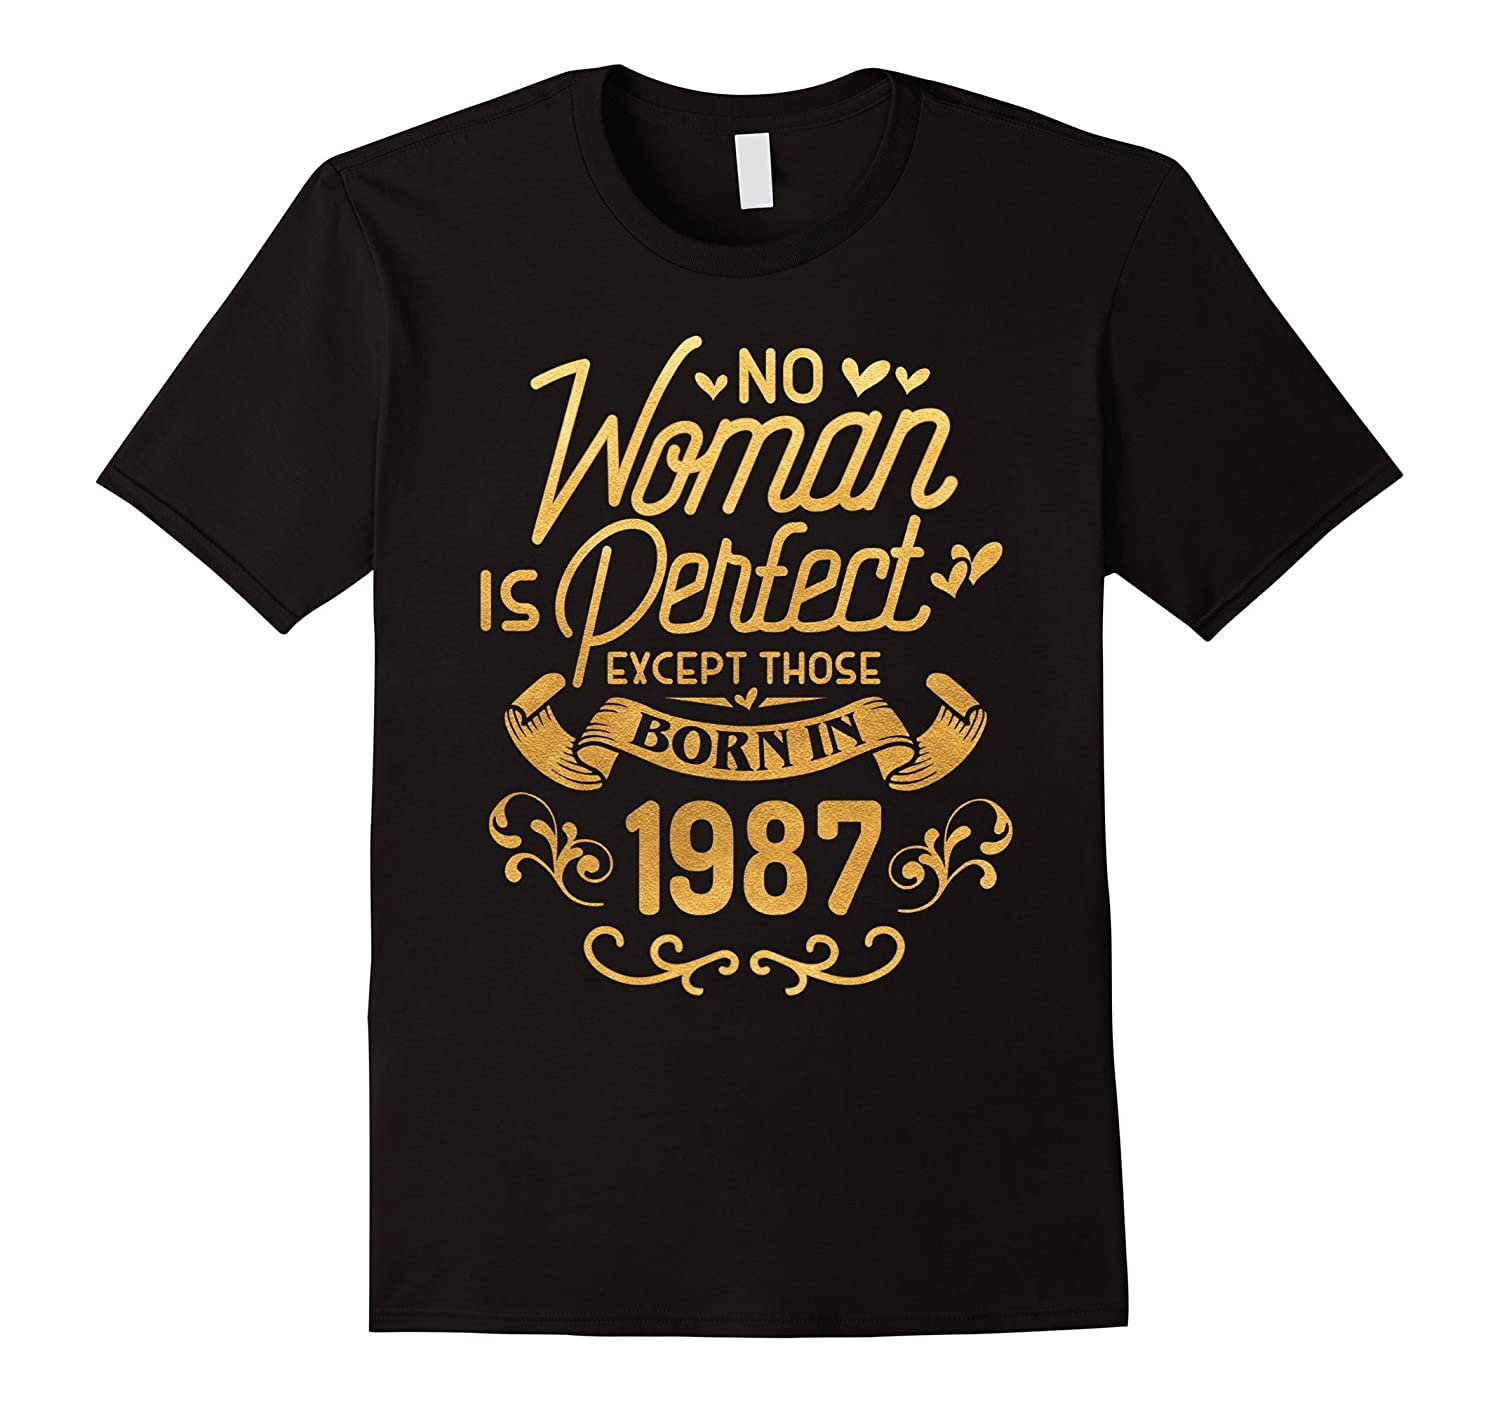 30th Birthday Gift TShirt Woman Is Perfect 1987 30 Year Old-PL